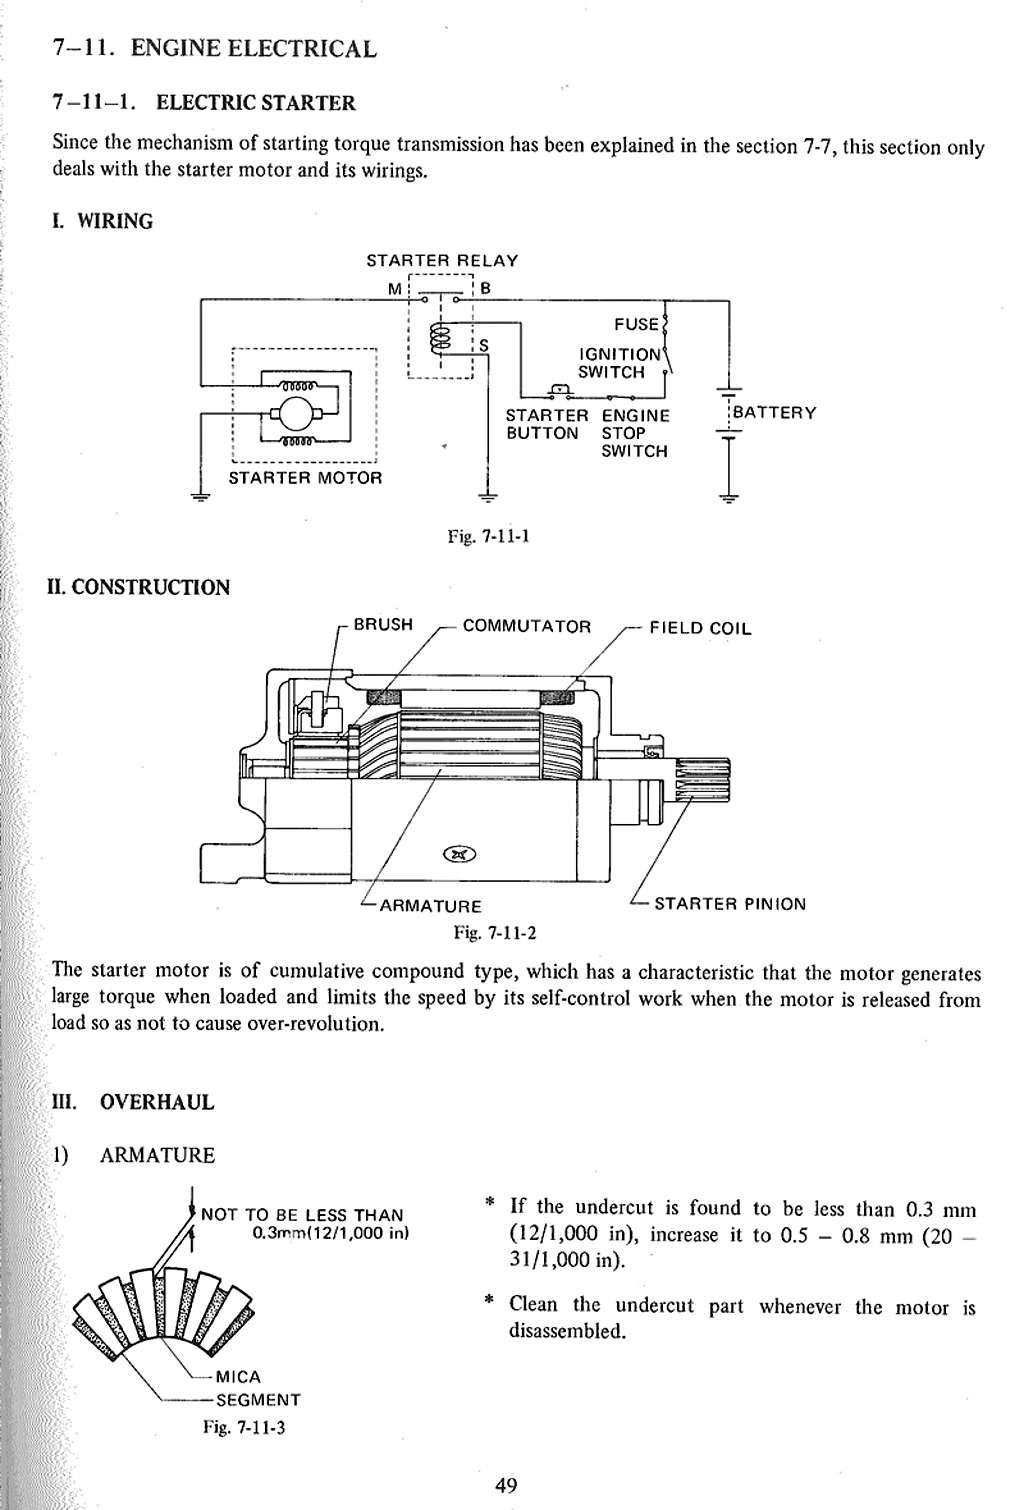 transmission, air cleaner